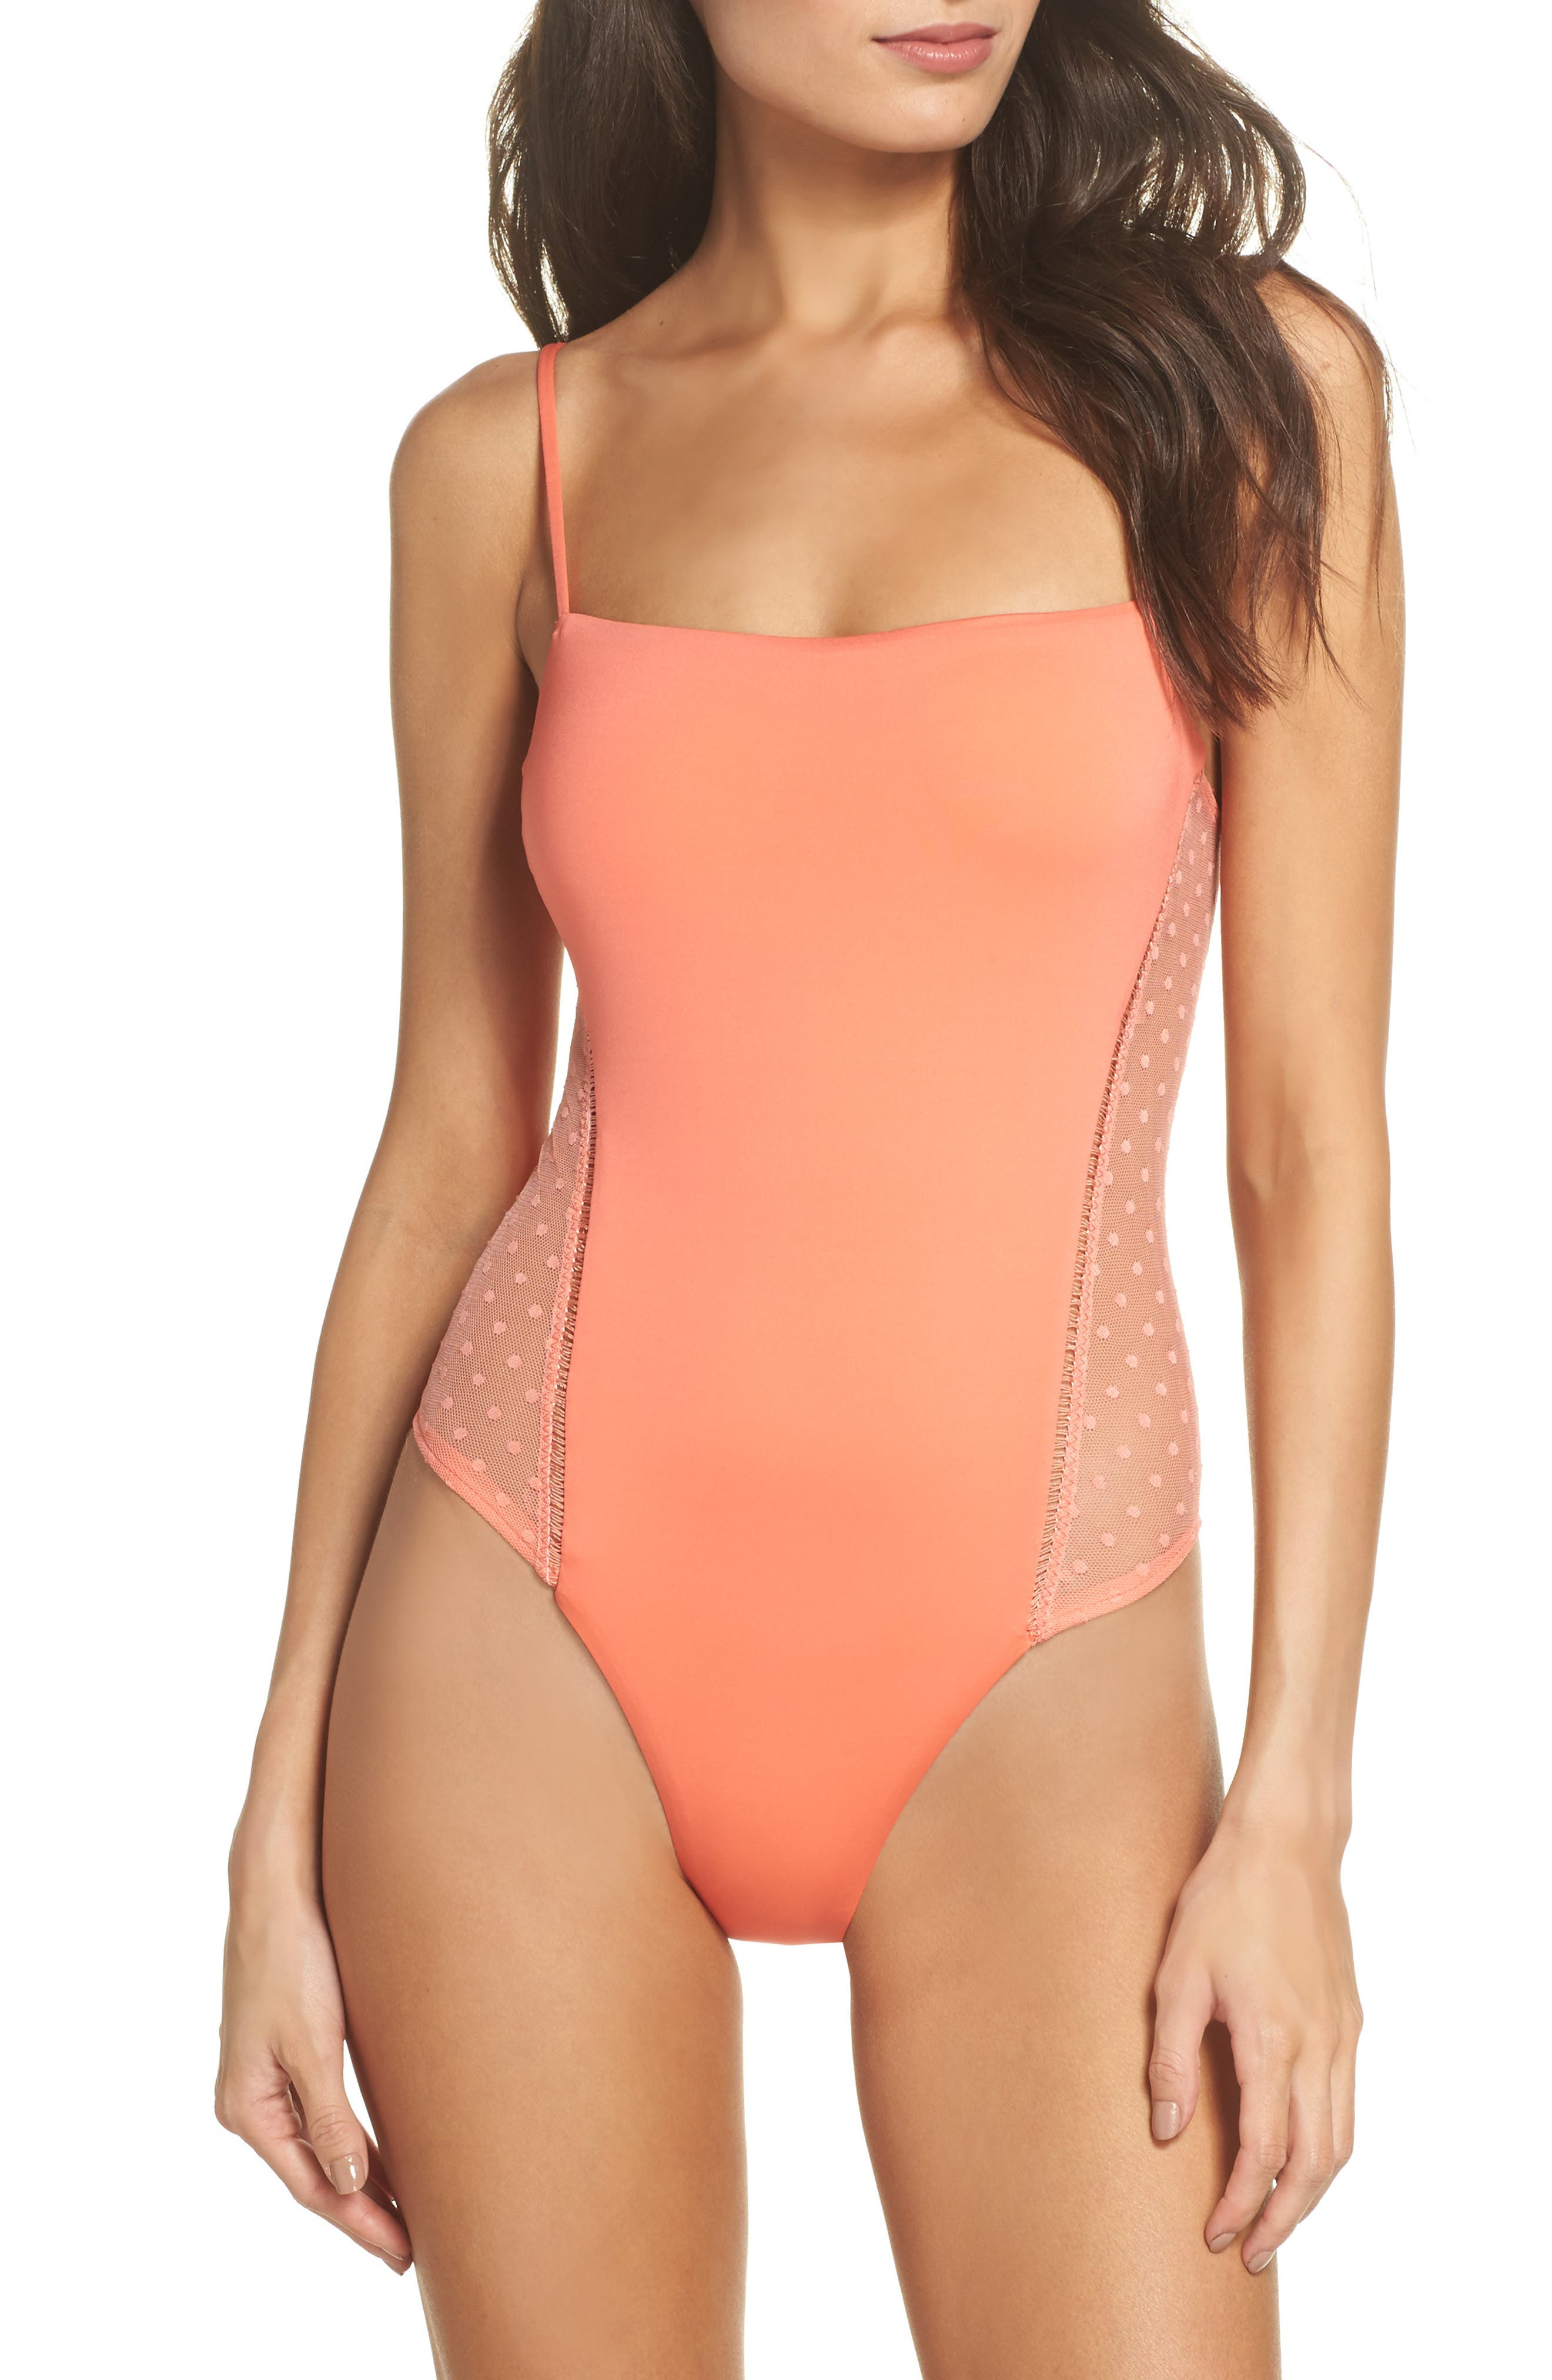 Swiss Miss One-Piece Swimsuit,                         Main,                         color, Persimmon